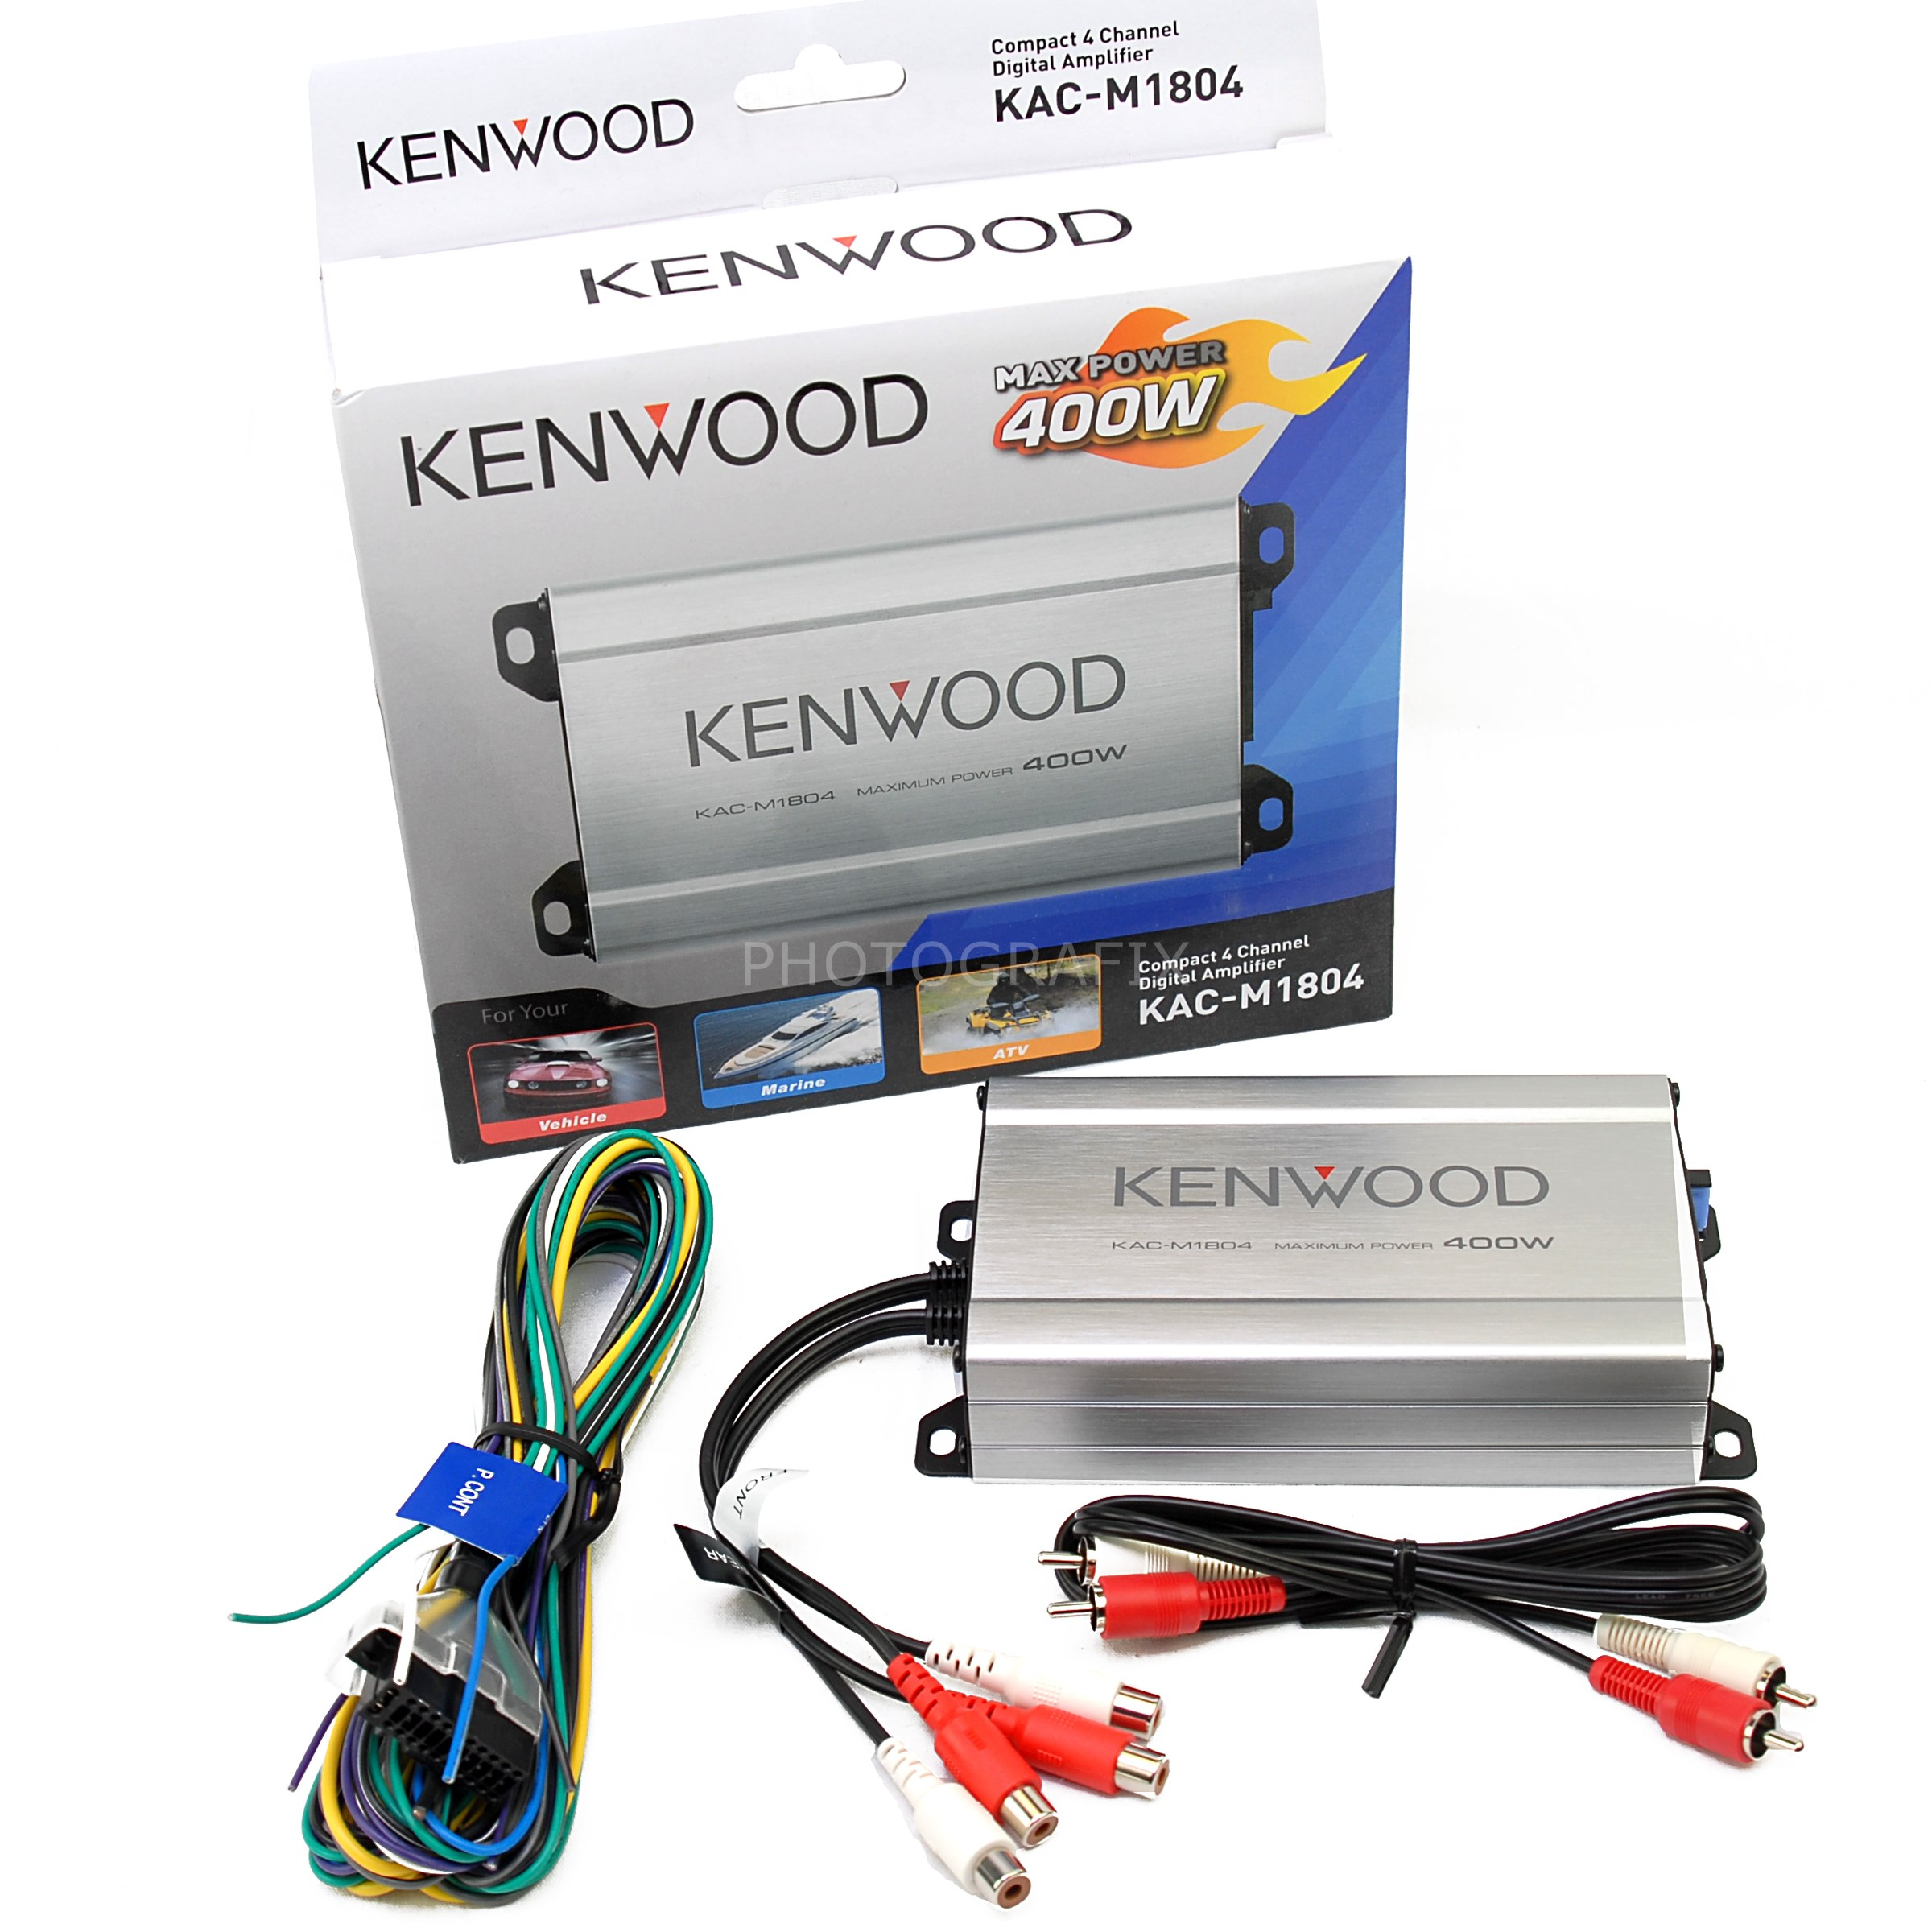 kenkacm1804__itemimageurl1 kenwood kac m1804 compact 4 channel digital car boat or motorcycle kenwood kac m3004 wiring diagram at edmiracle.co